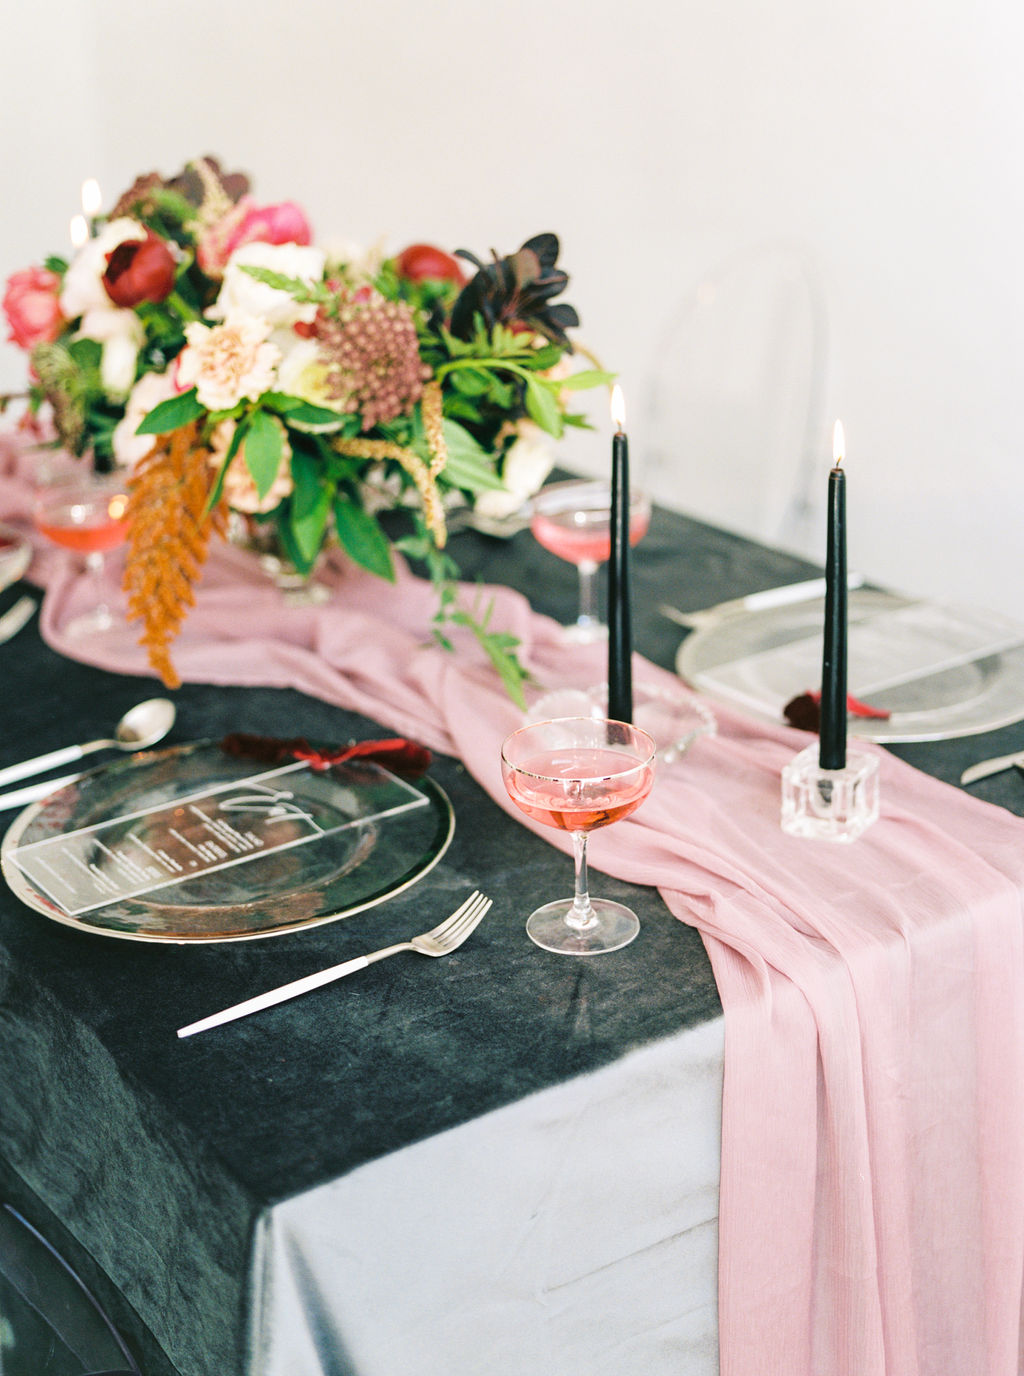 Pink silk table runner on dark velvet table linen wedding tablescape idea (Photo by: Olivia Richards Photo)